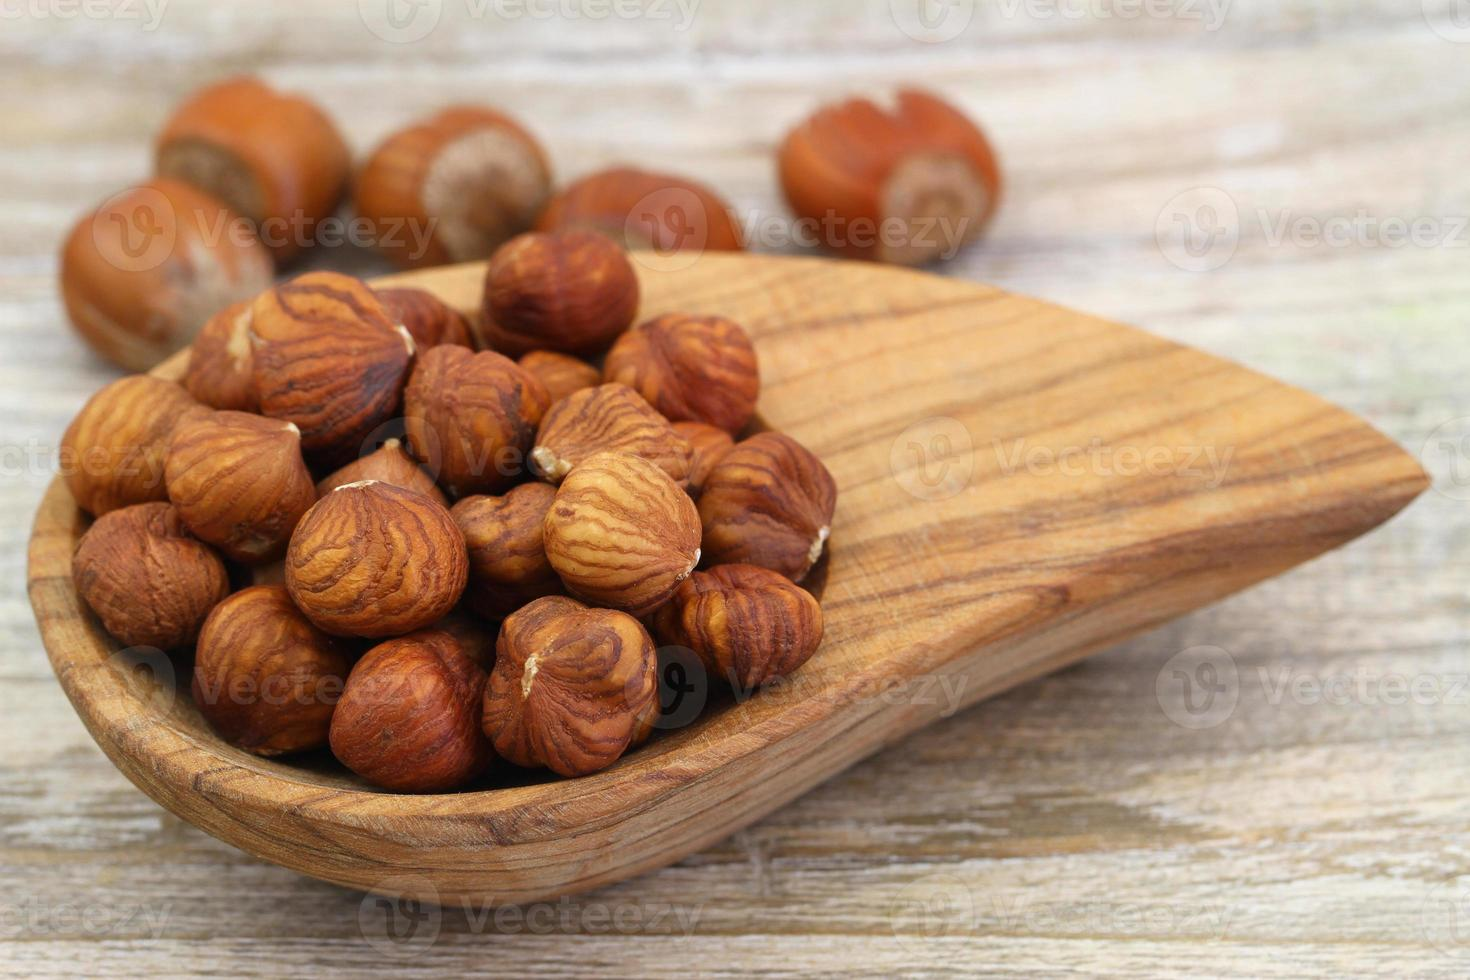 Hazelnuts in miniature wooden bowl, close up photo